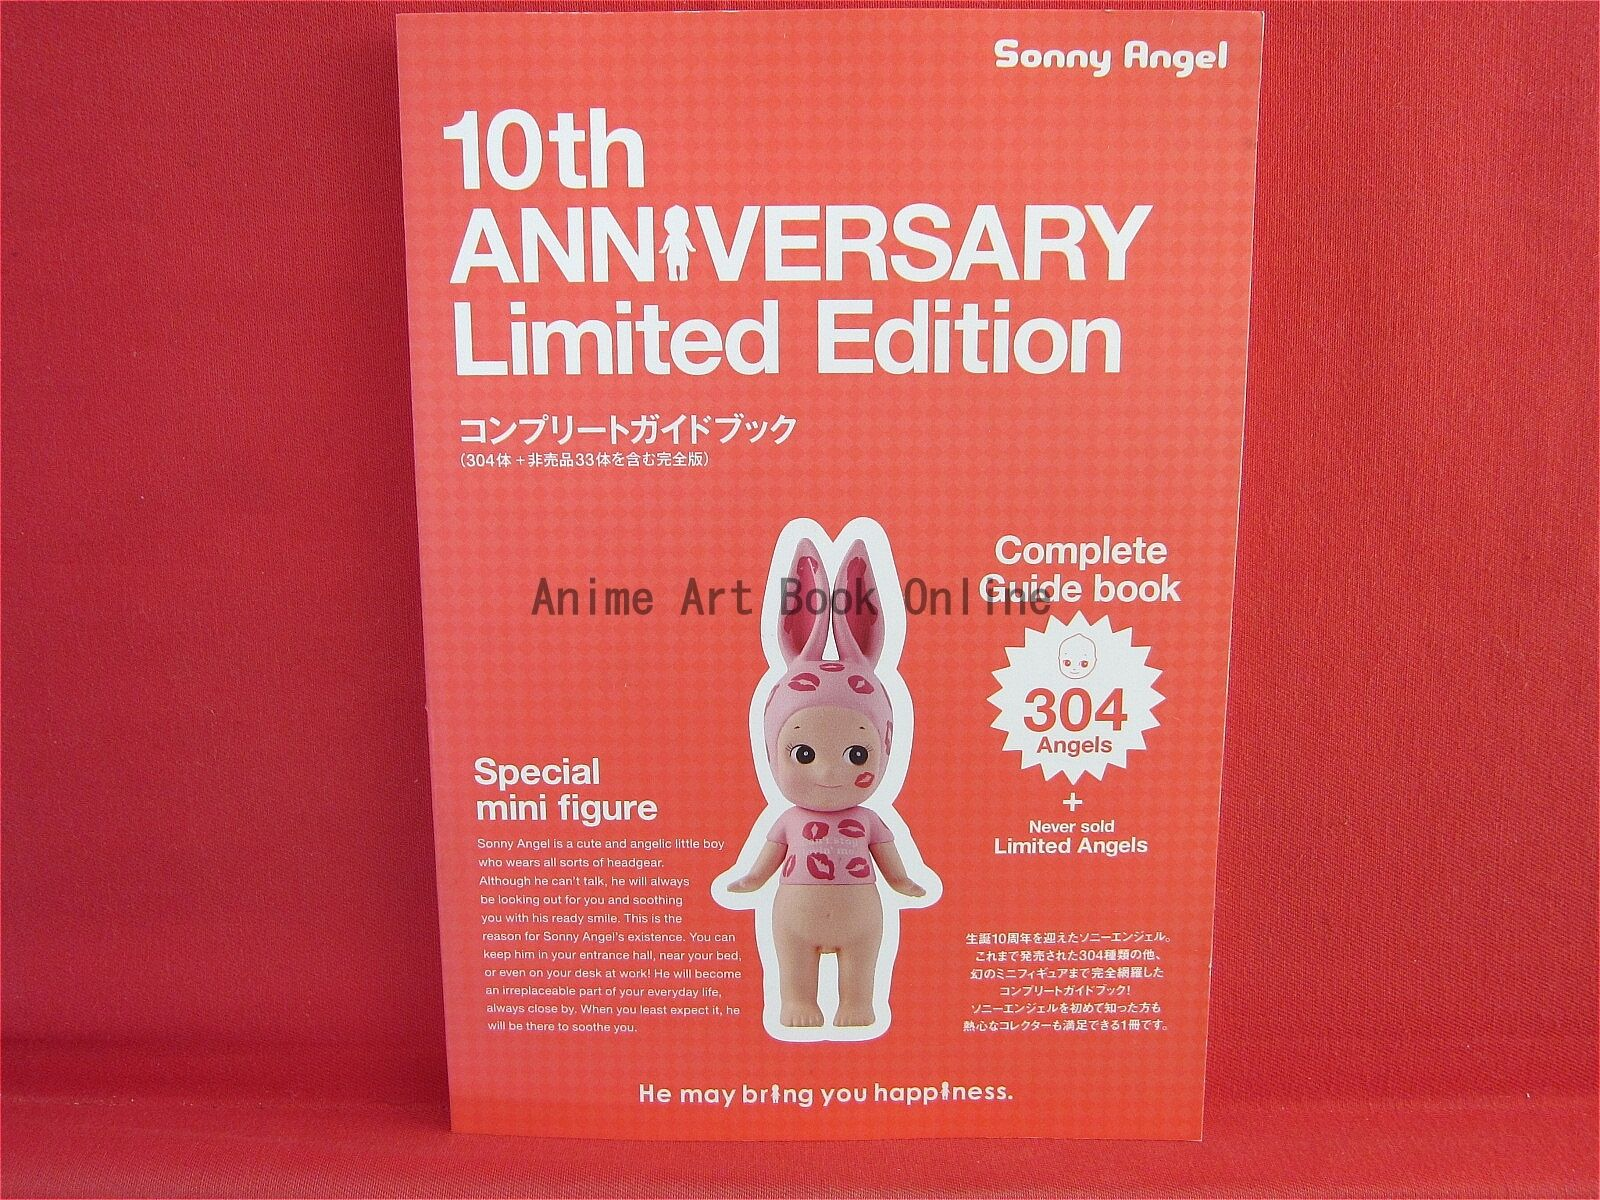 Sonny Angel Limited Edition 10th anniversary complete complete complete Guide Book c6b46a